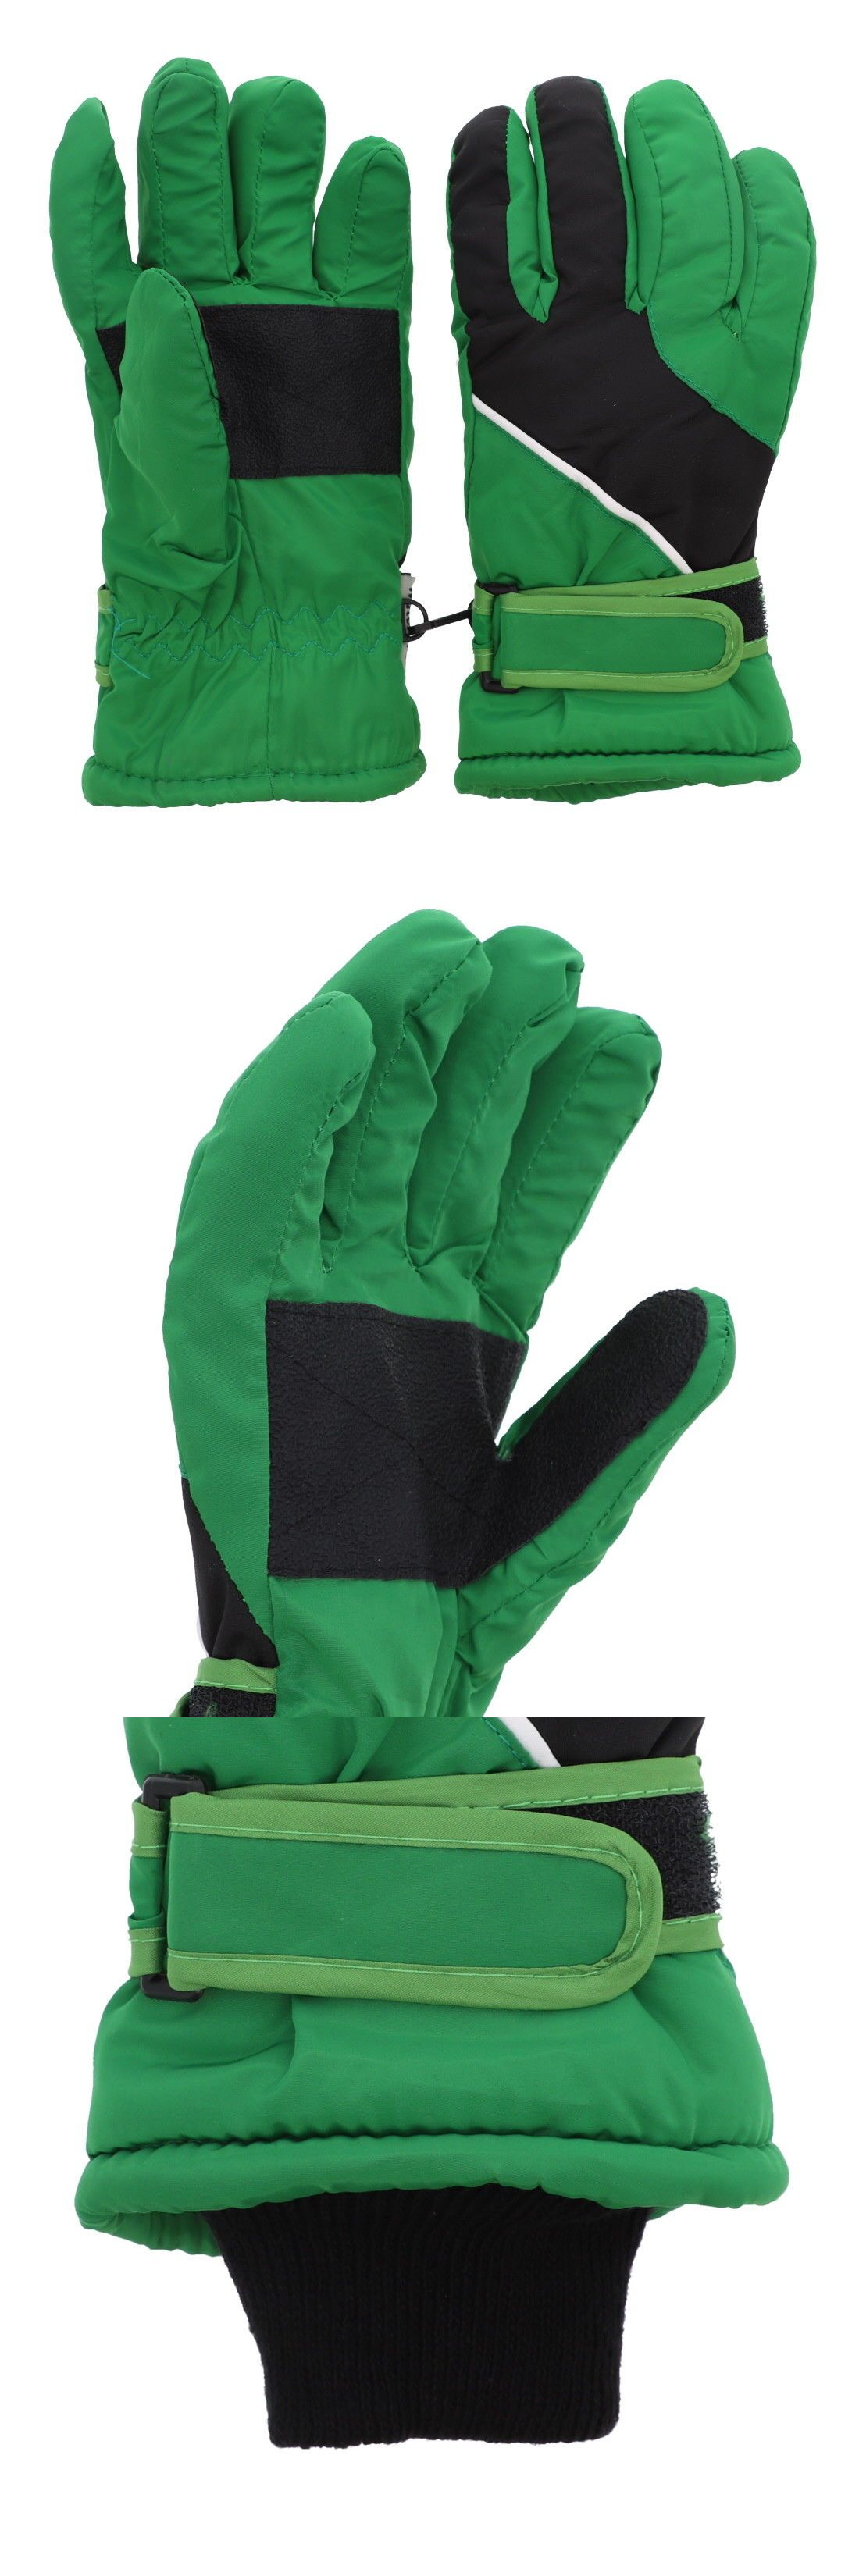 cde85c69e Gloves and Mittens 57885: Boys Waterproof Thinsulate Lined Winter Green  Striped Ski And Snowboard Gloves -> BUY IT NOW ONLY: $13.99 on #eBay #gloves  ...